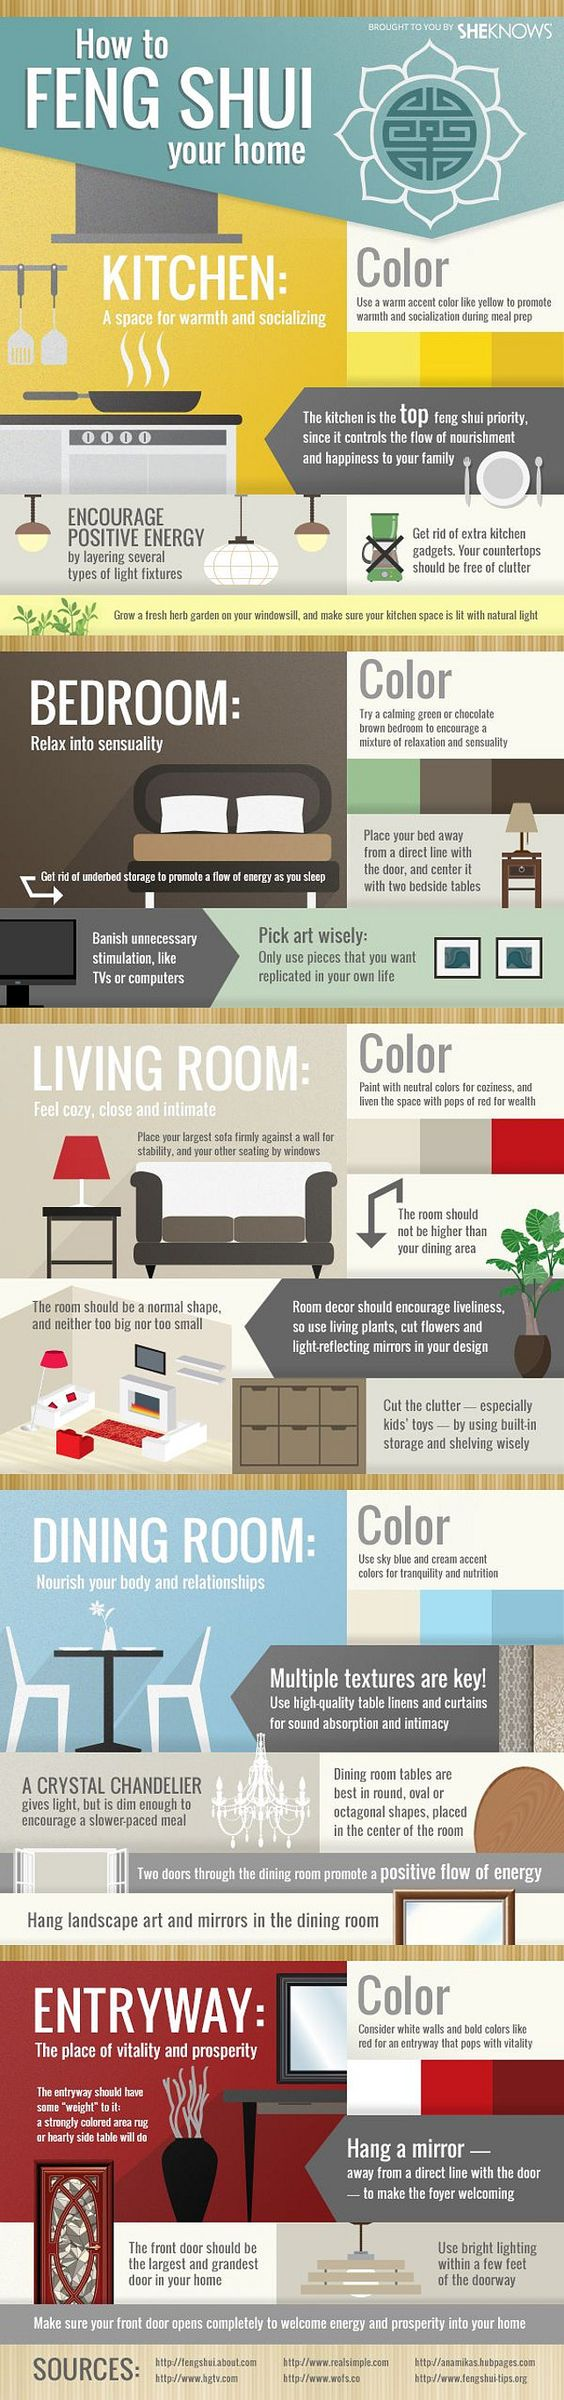 Feng shui Decorating Tips. A room-by-room guide to feng shui your home. #fengshui #fengshuiDecor #fengshuiInteriors Via She Knows.: